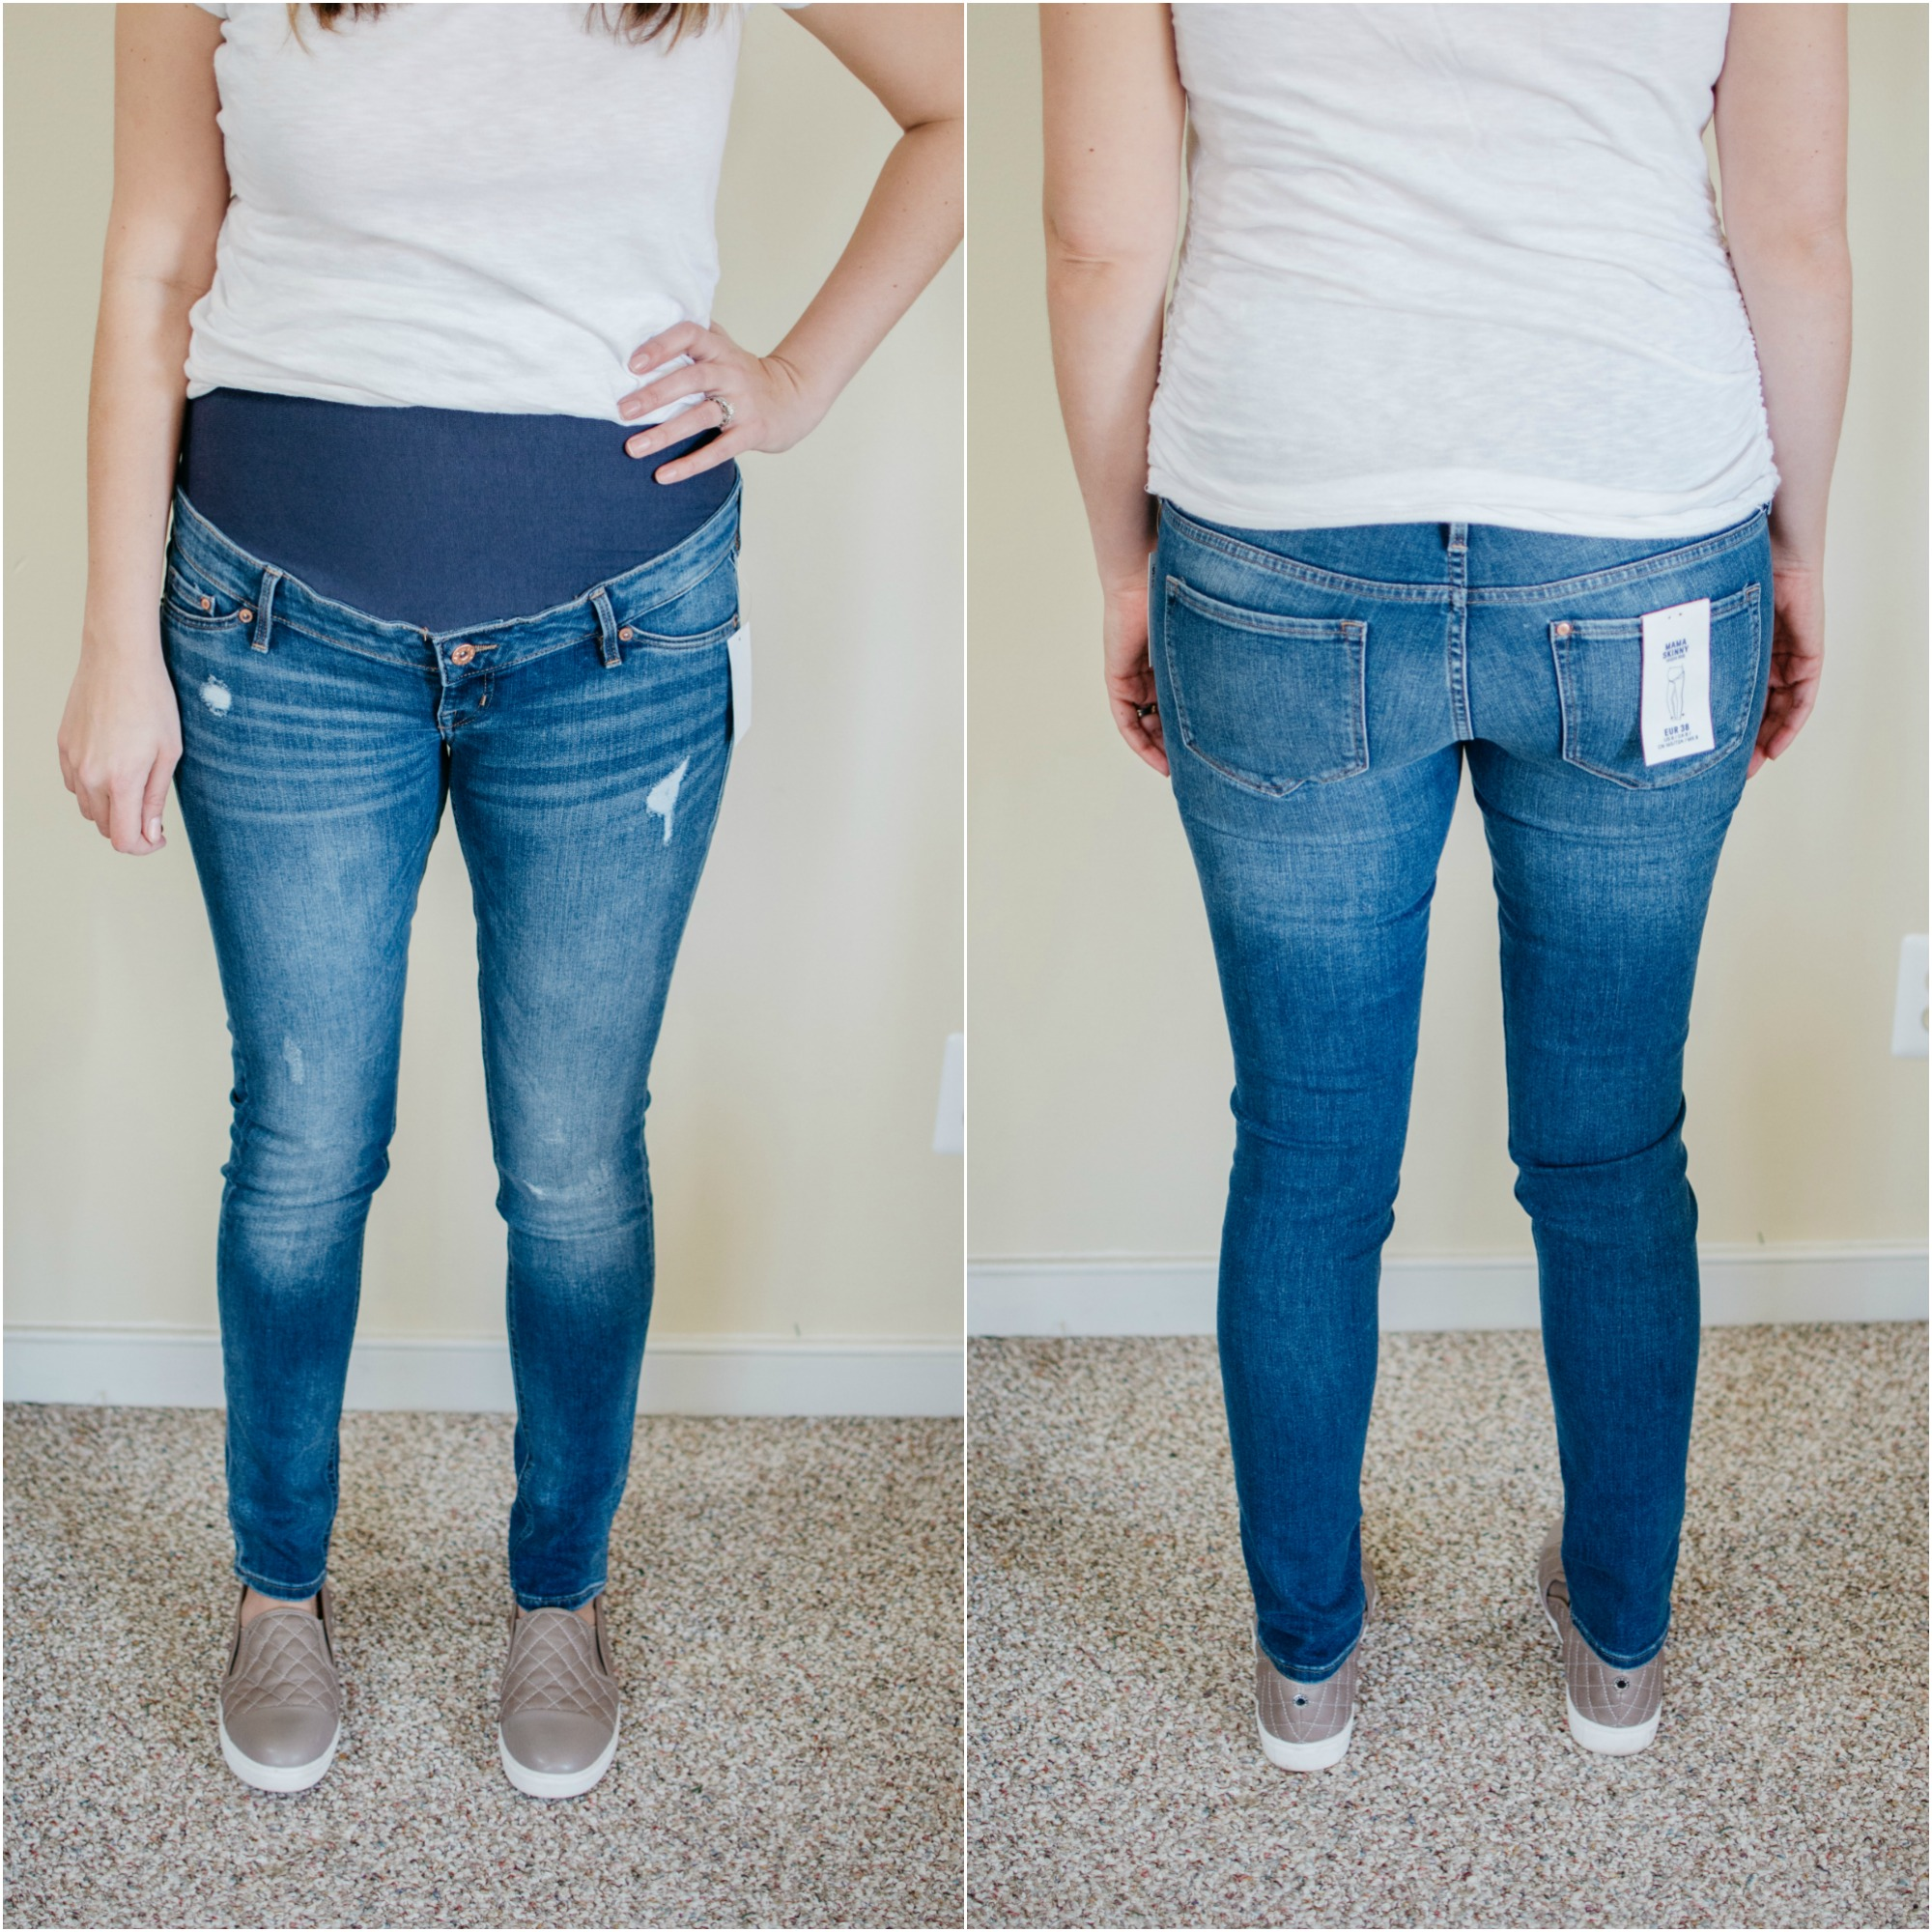 H&M mama skinny jeans maternity skinny jeans review | See reviews of over 15 maternity jeans brands by clicking through to this post! | bylaurenm.com